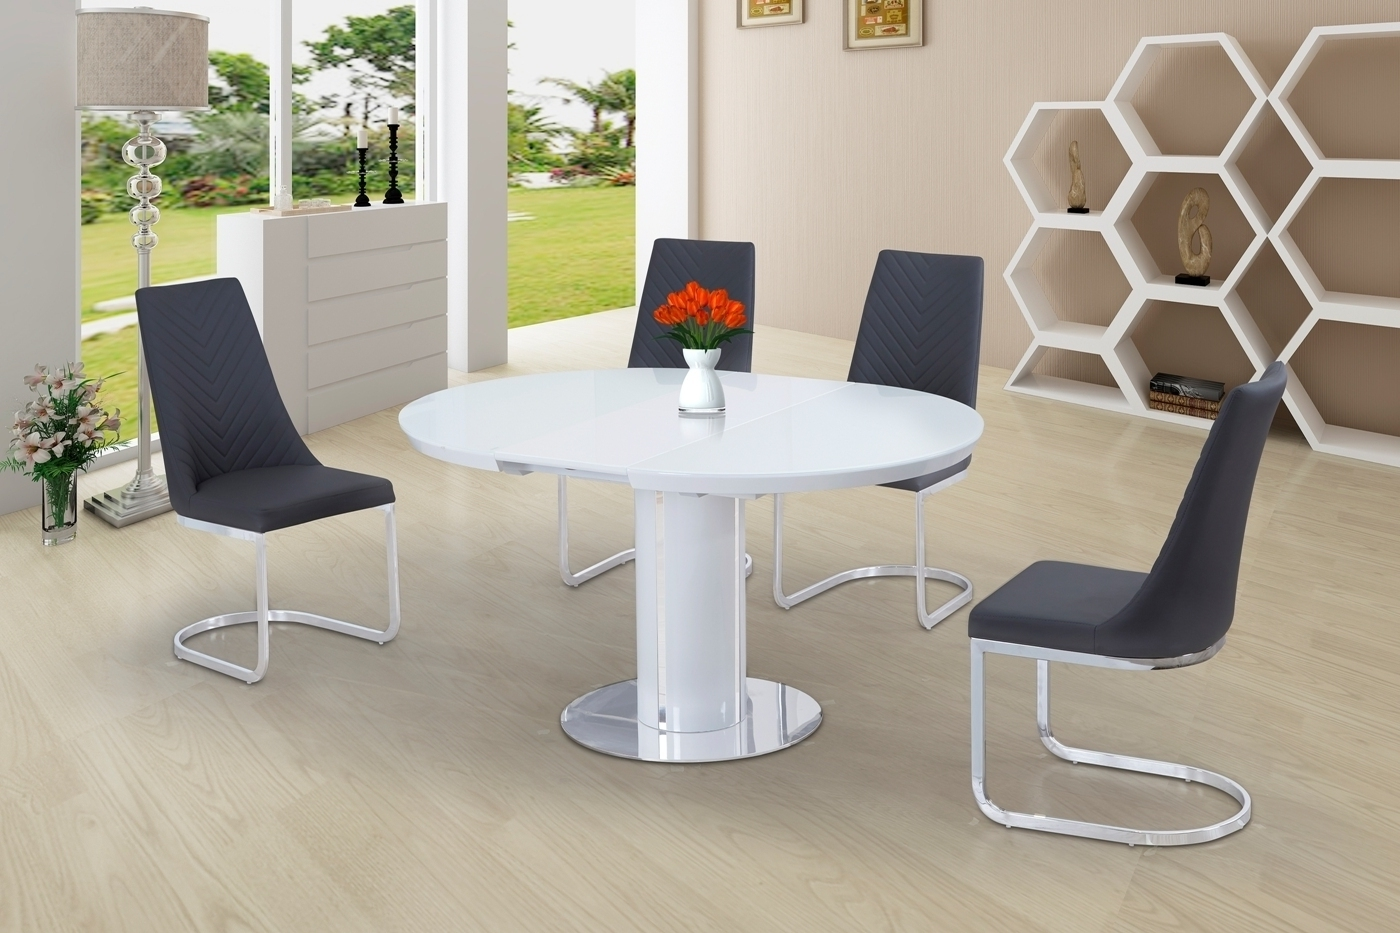 White Gloss And Glass Dining Tables For Most Recent Round White Glass High Gloss Dining Table And 6 Grey Chairs (View 7 of 25)